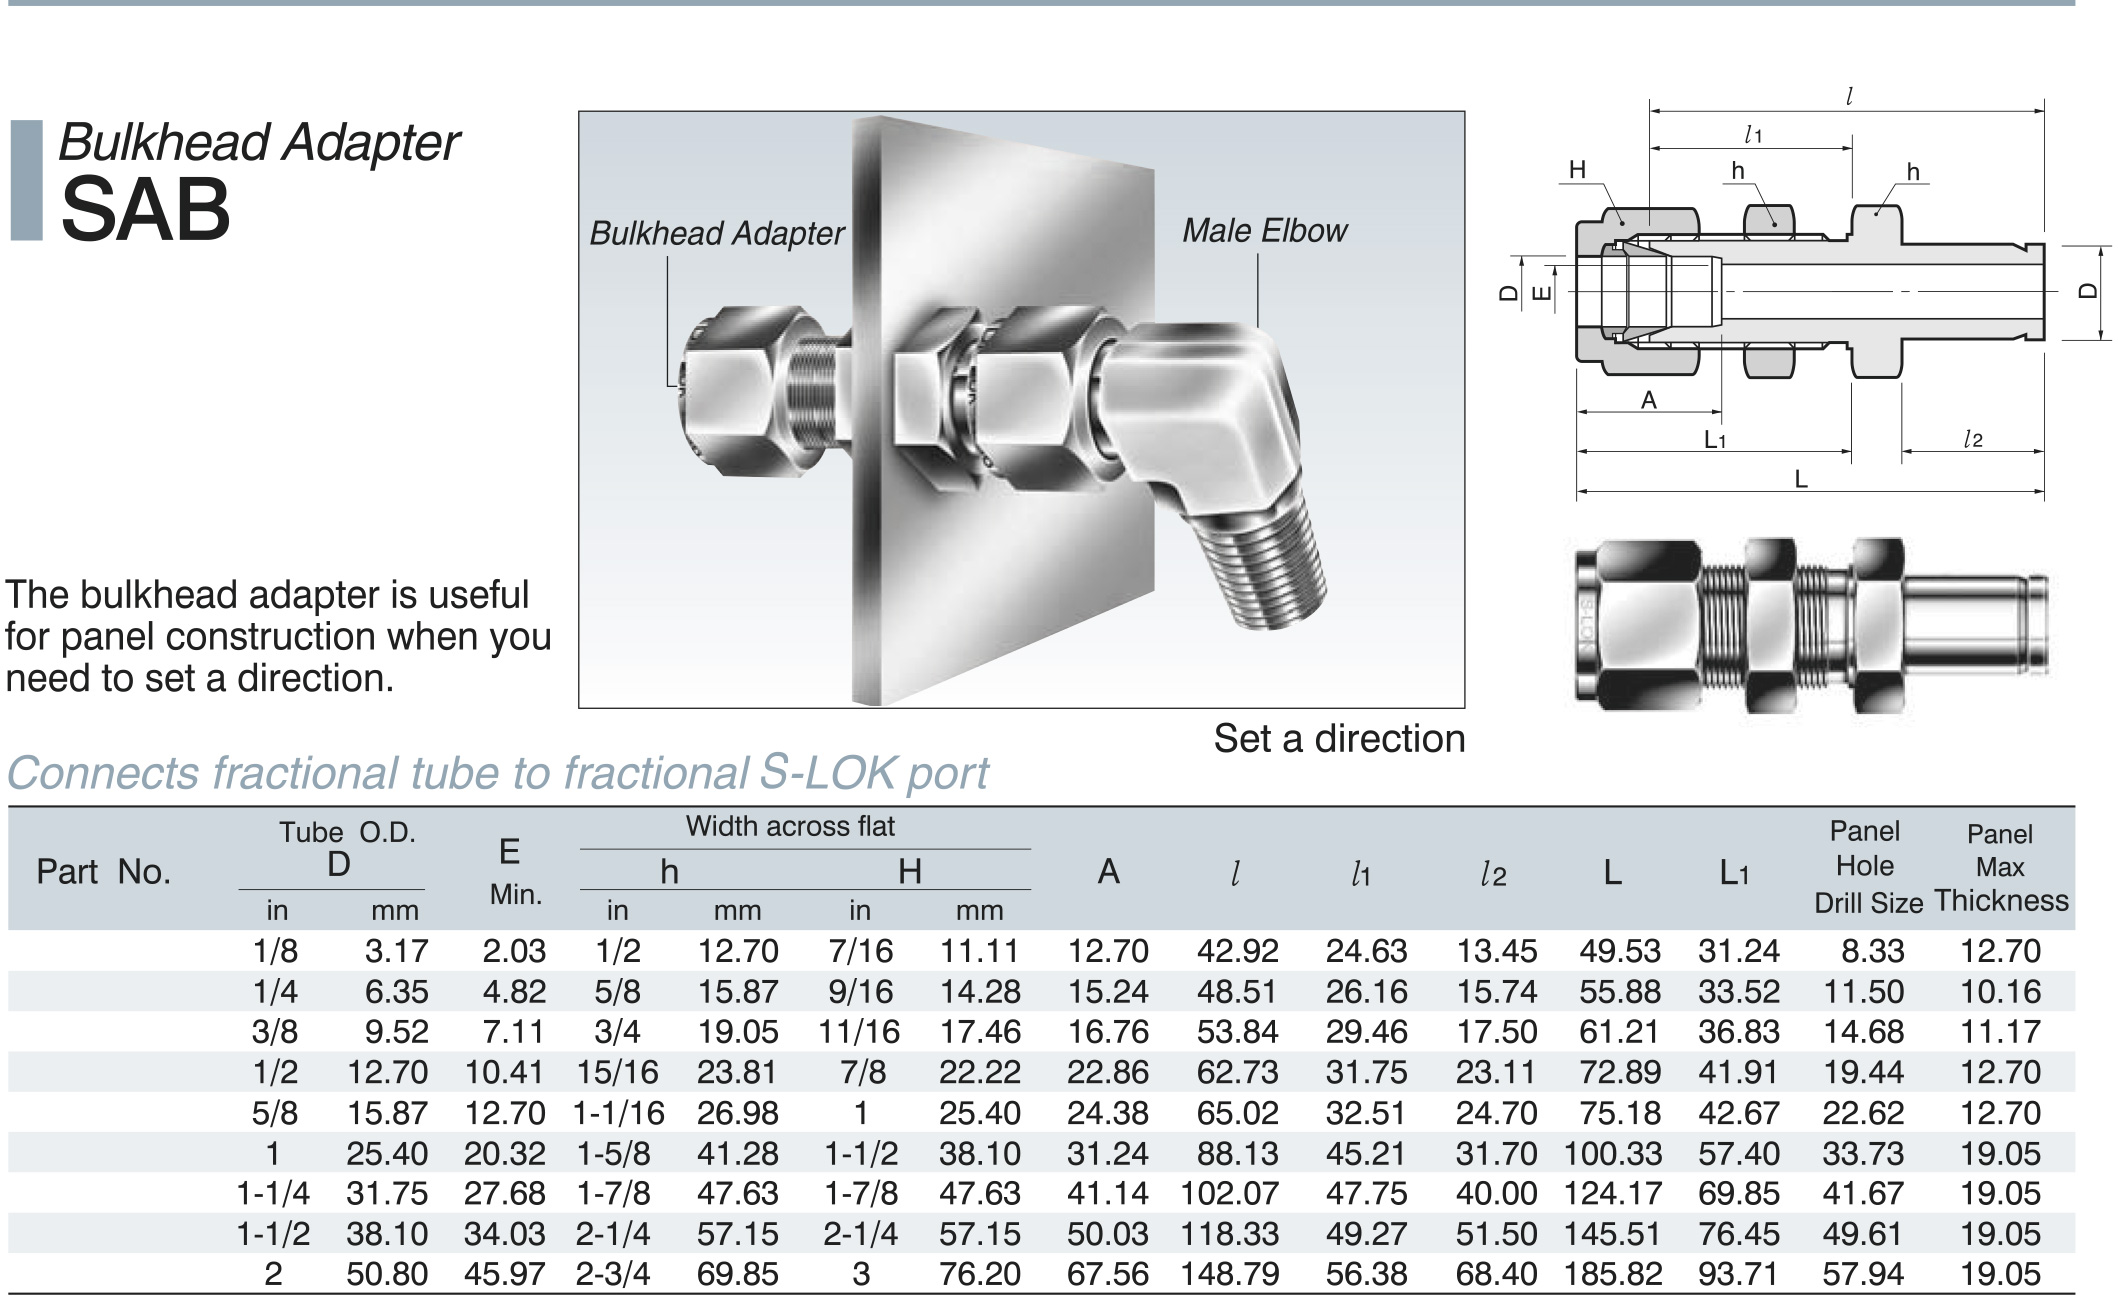 Stainless Steel Tube Fittings Bulkhead Adapter Dimensions